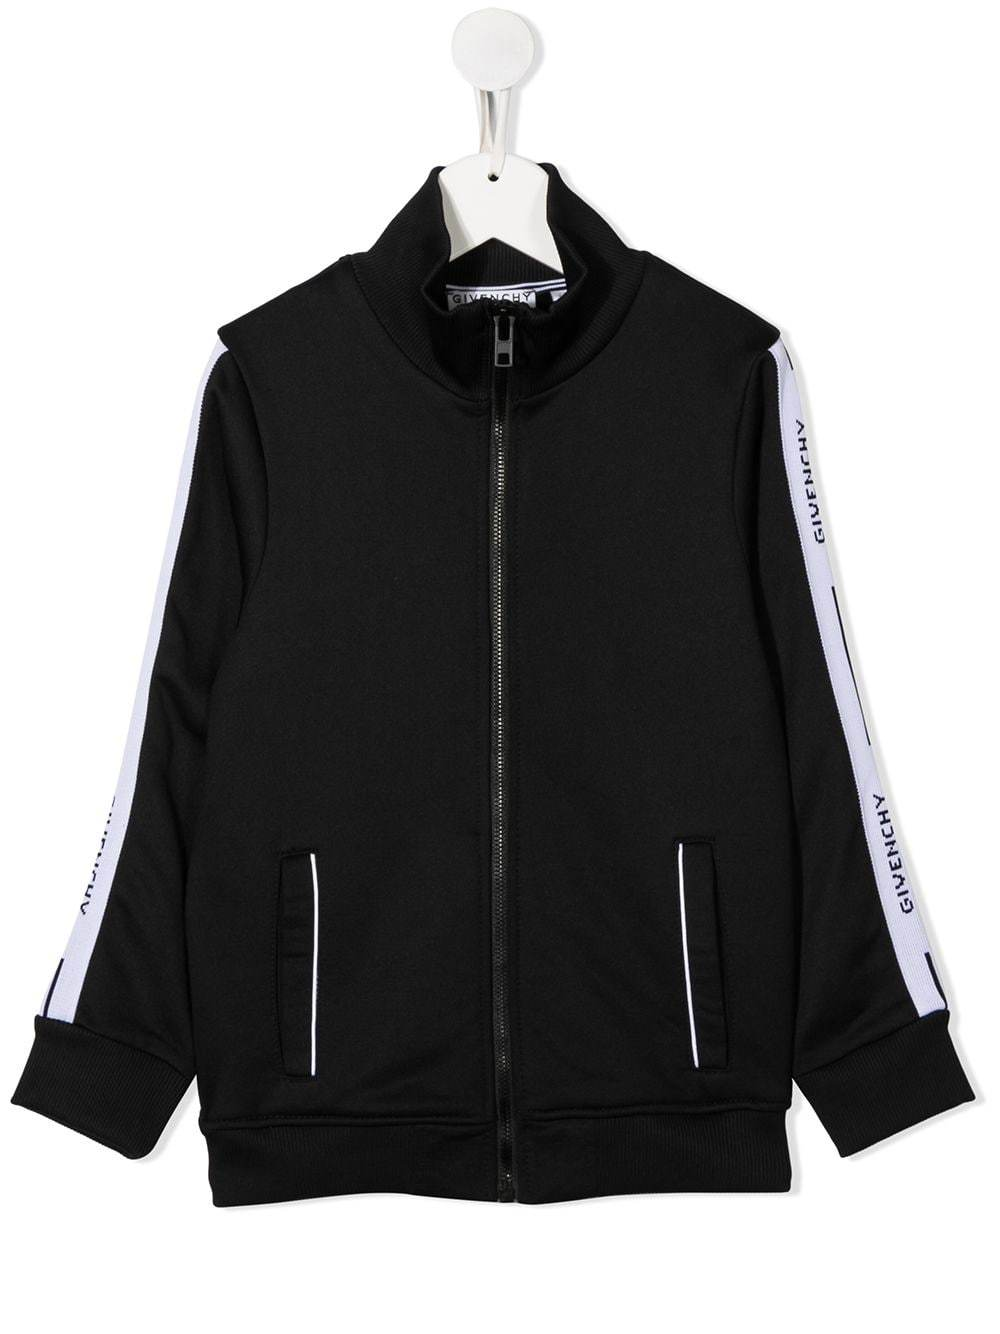 GIVENCHY KIDS Logo Cardigan Black - Maison De Fashion